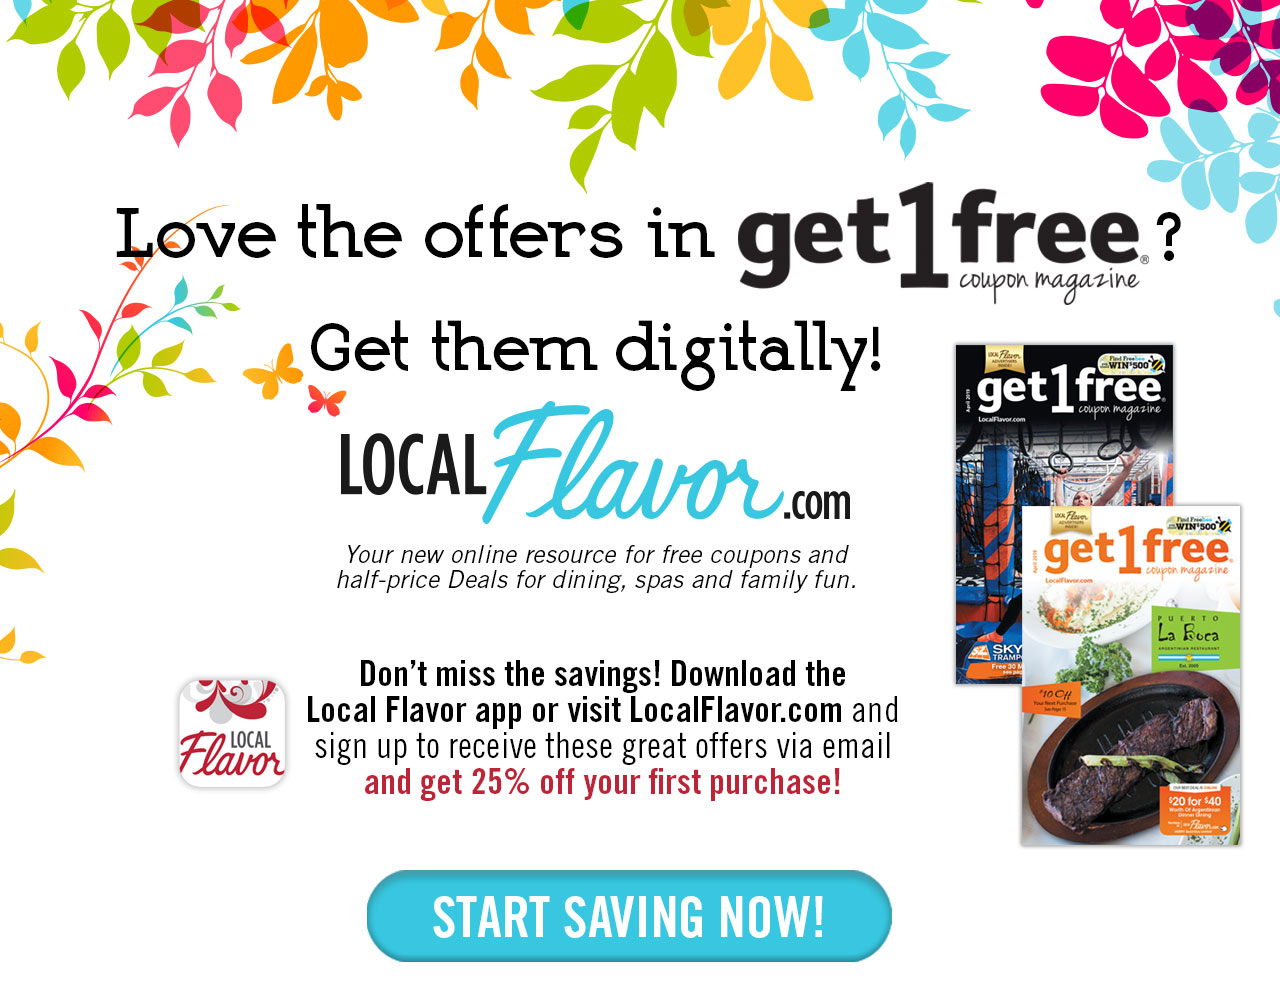 Love the offers in get1free coupon magazine?  Get them digitally! LocalFlavor.com              Your new online resource for free coupons and half-price deals for dining, spas              and family fun.  Don't miss the savings!  Download the Local Flavor app or visit              LocalFlavor.com and sign up to receive these great offers via email and get 25% off              your first purchase! Start Saving Now!